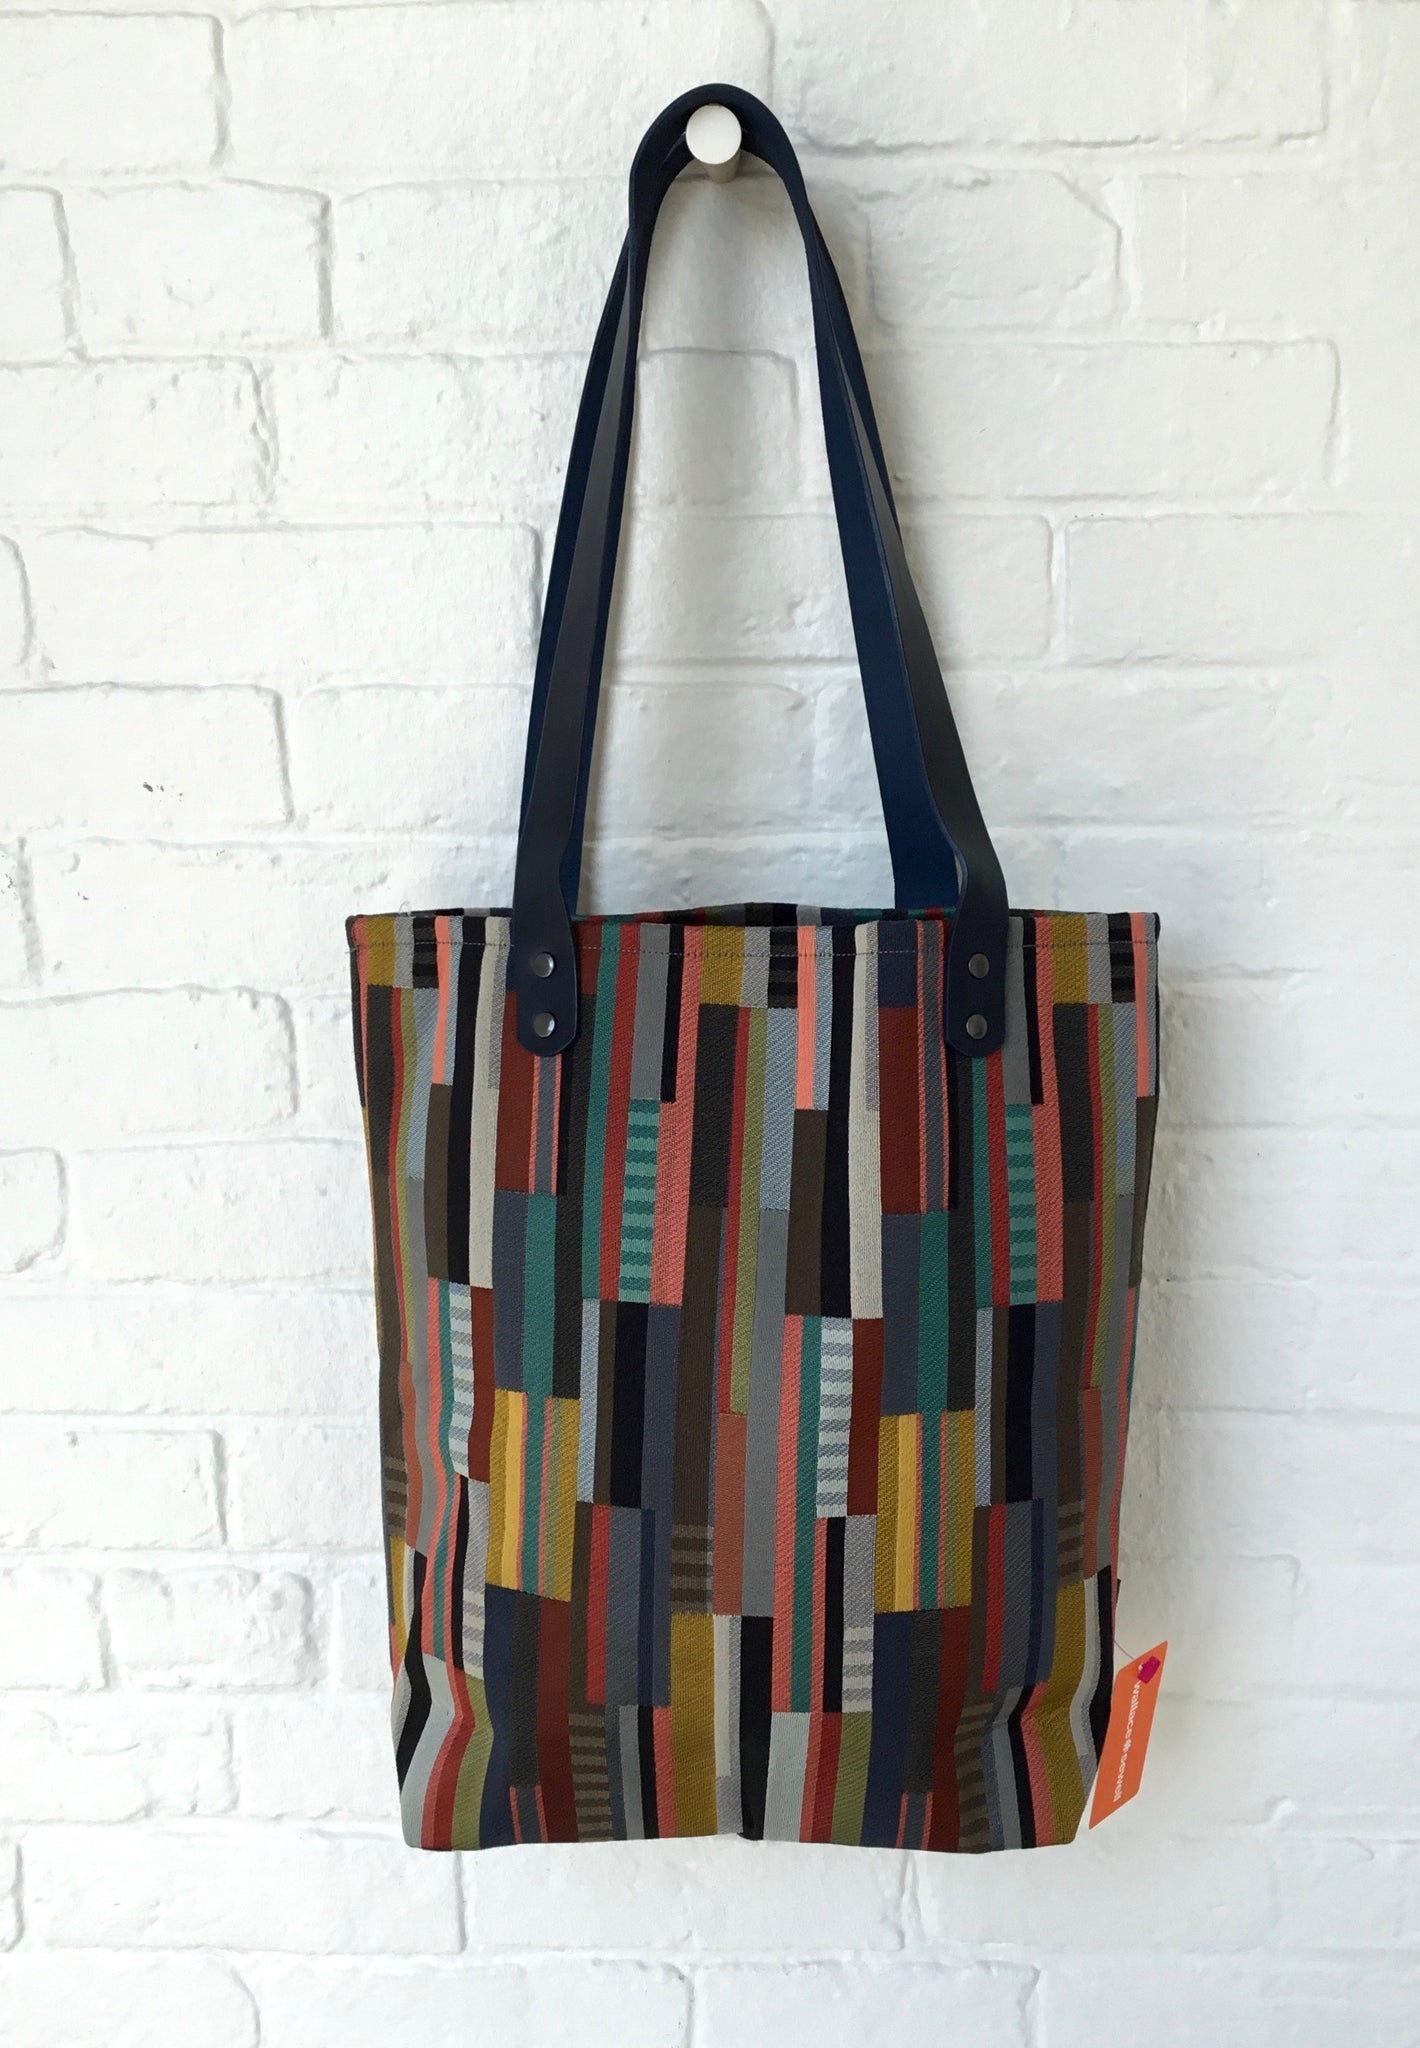 Wallace Sewell Cubitt Tote Bag in Multi